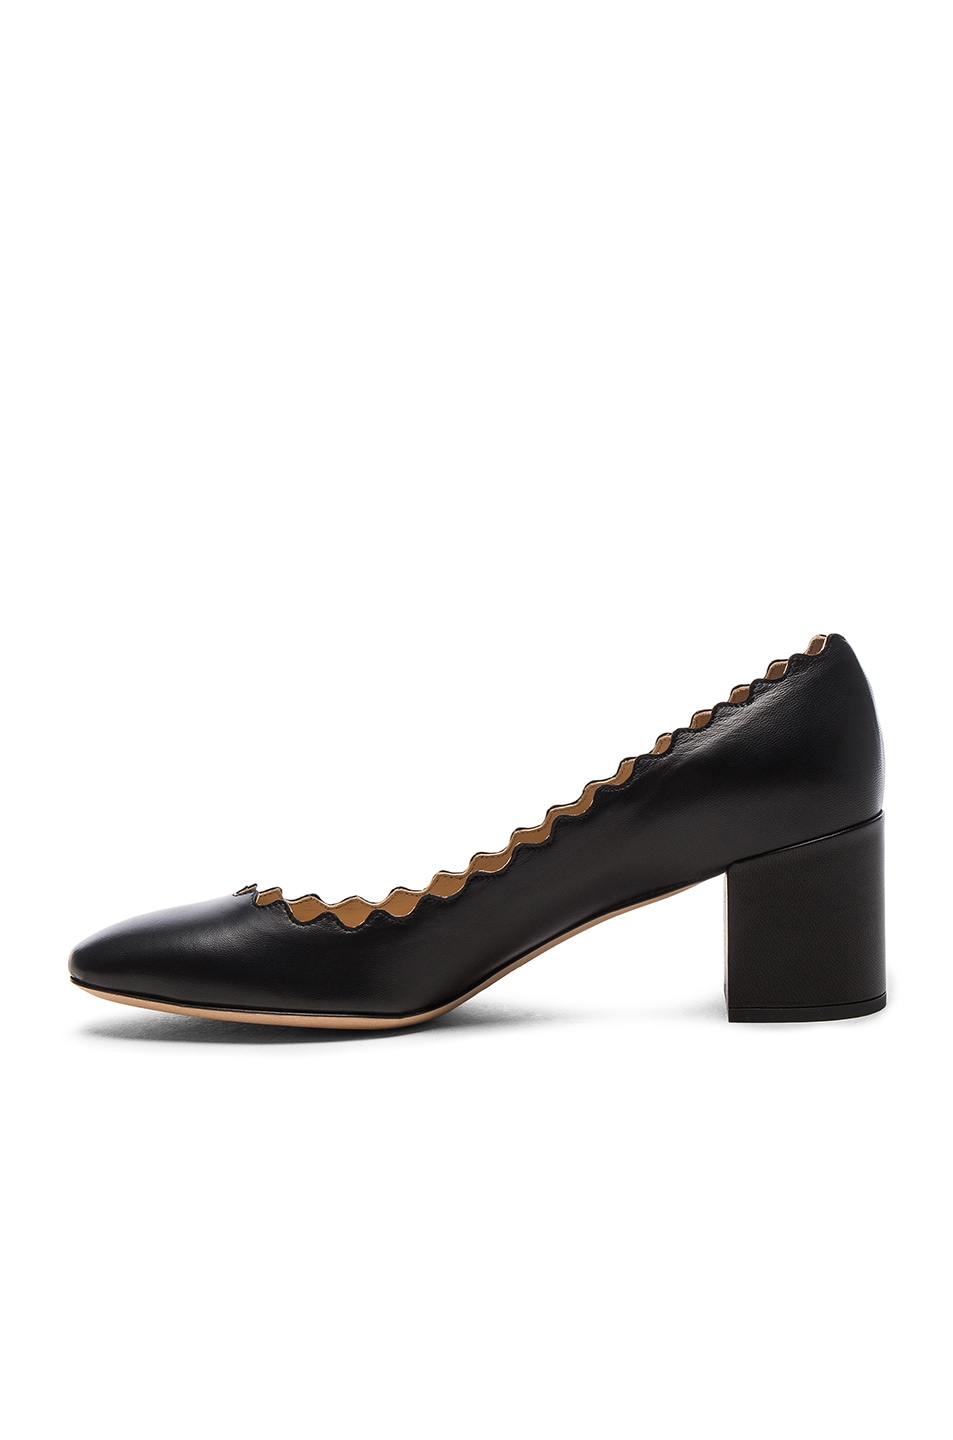 Image 5 of Chloe Lauren Leather Scallop Pumps in Black